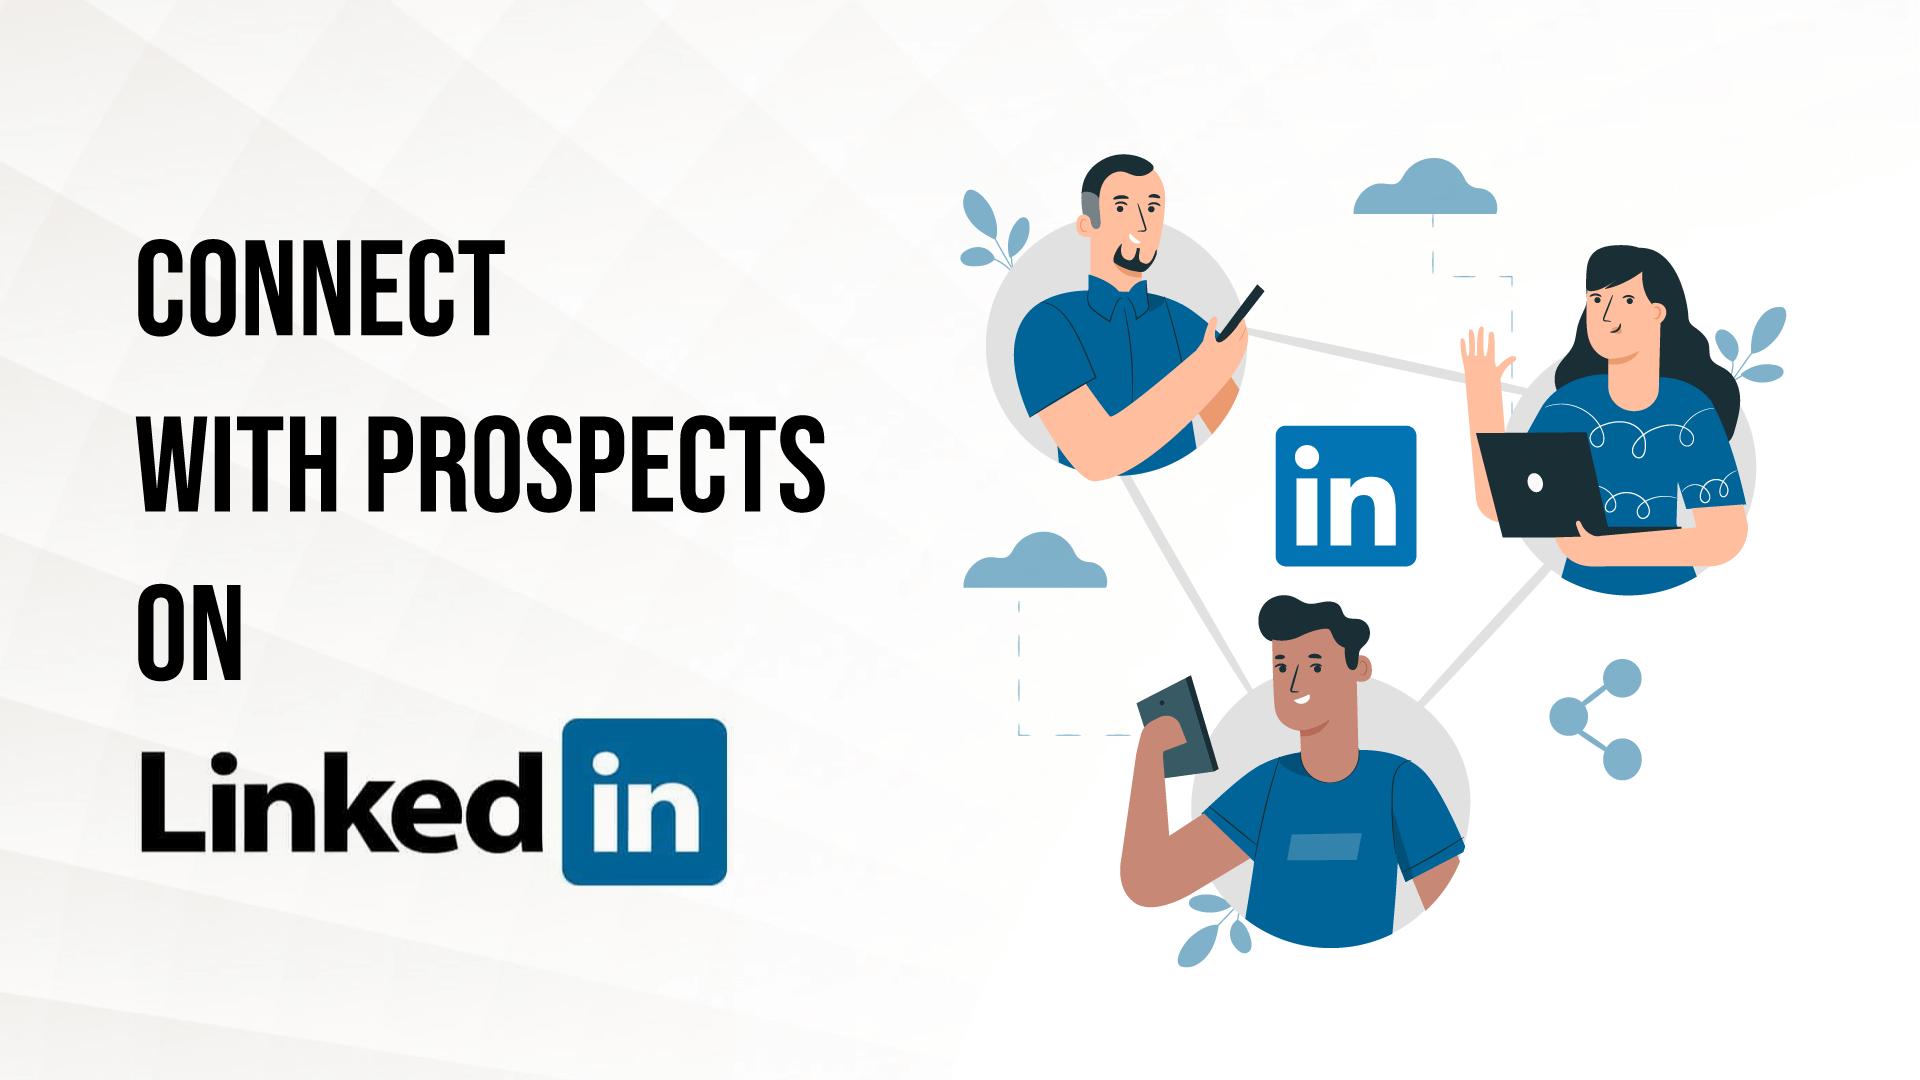 Connect with prospects on LinkedIn